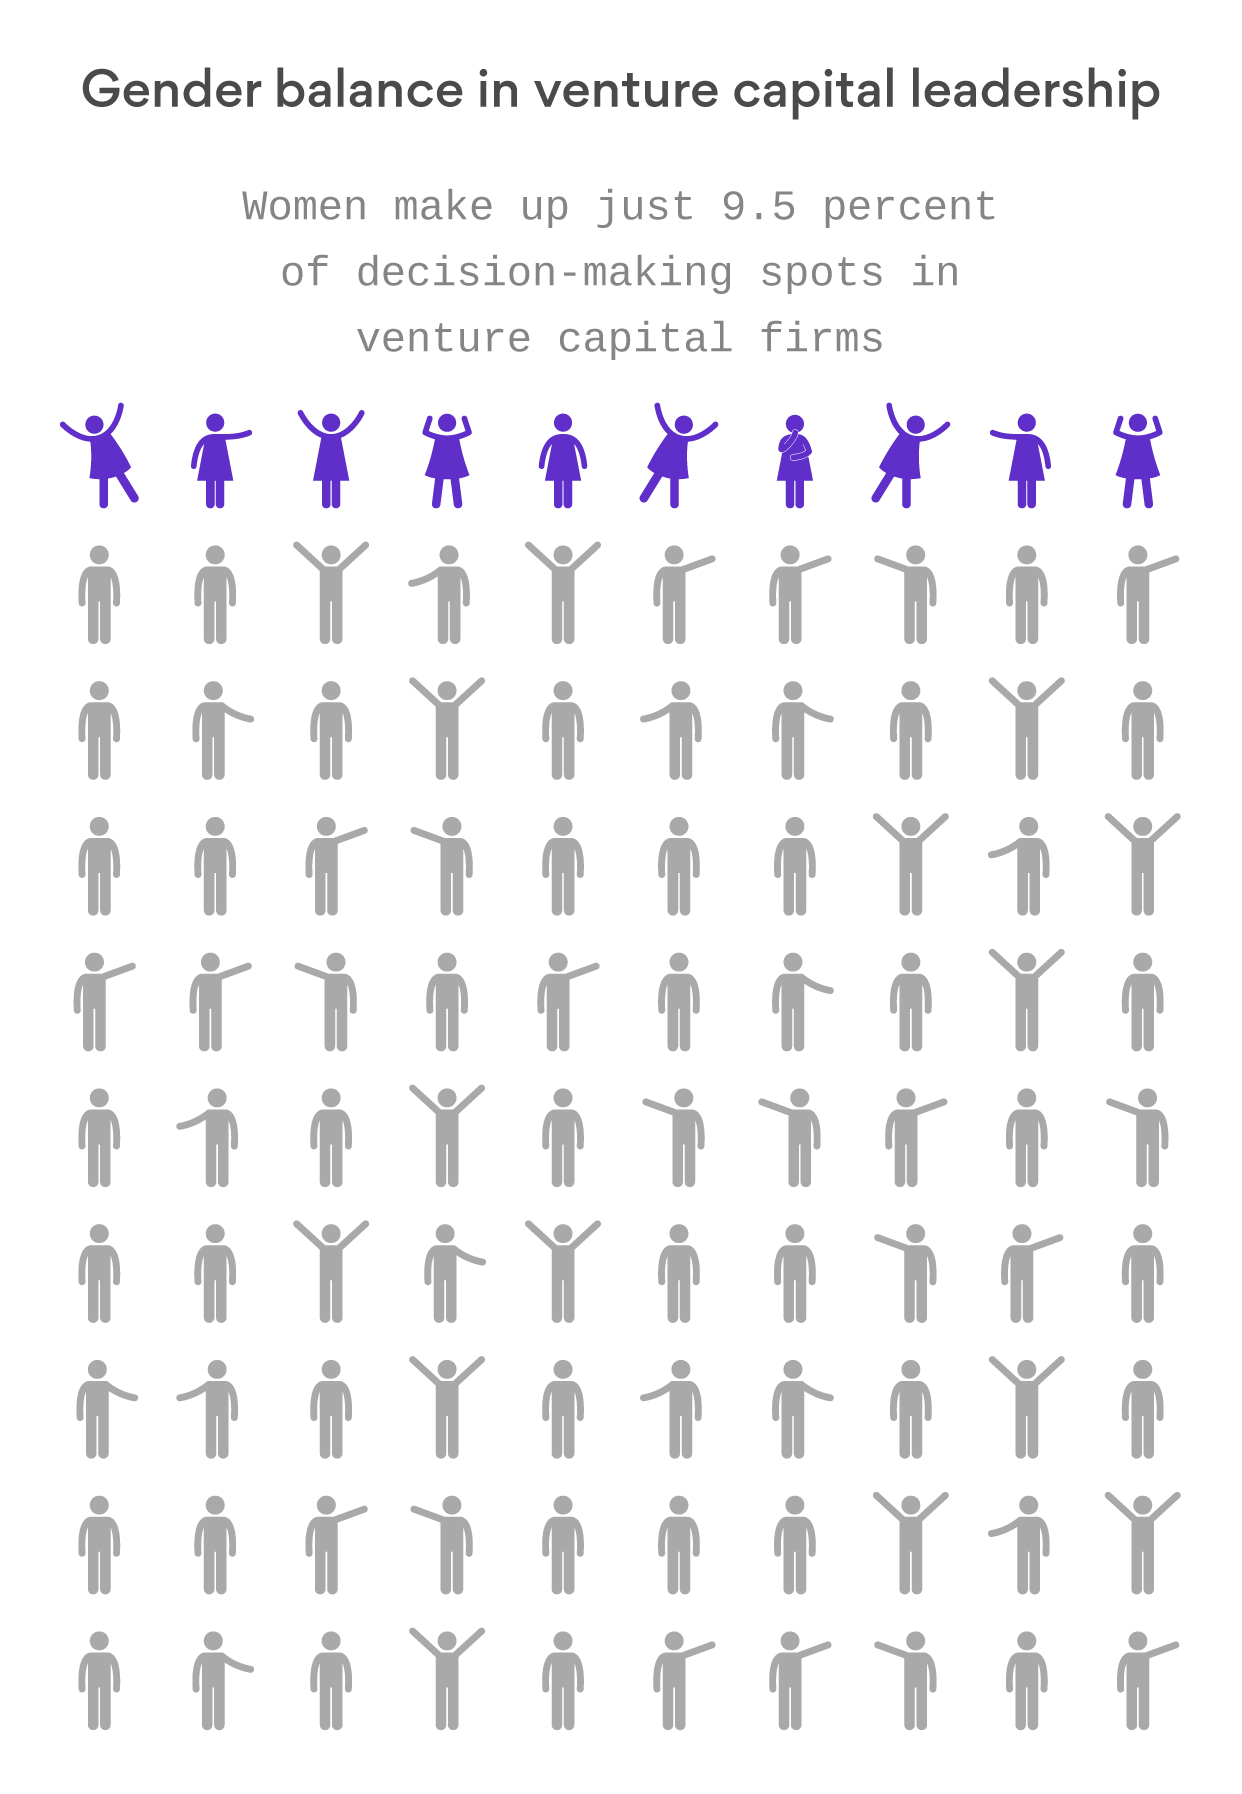 Only 9.65% of decision-makers at U.S. venture capital firms are women